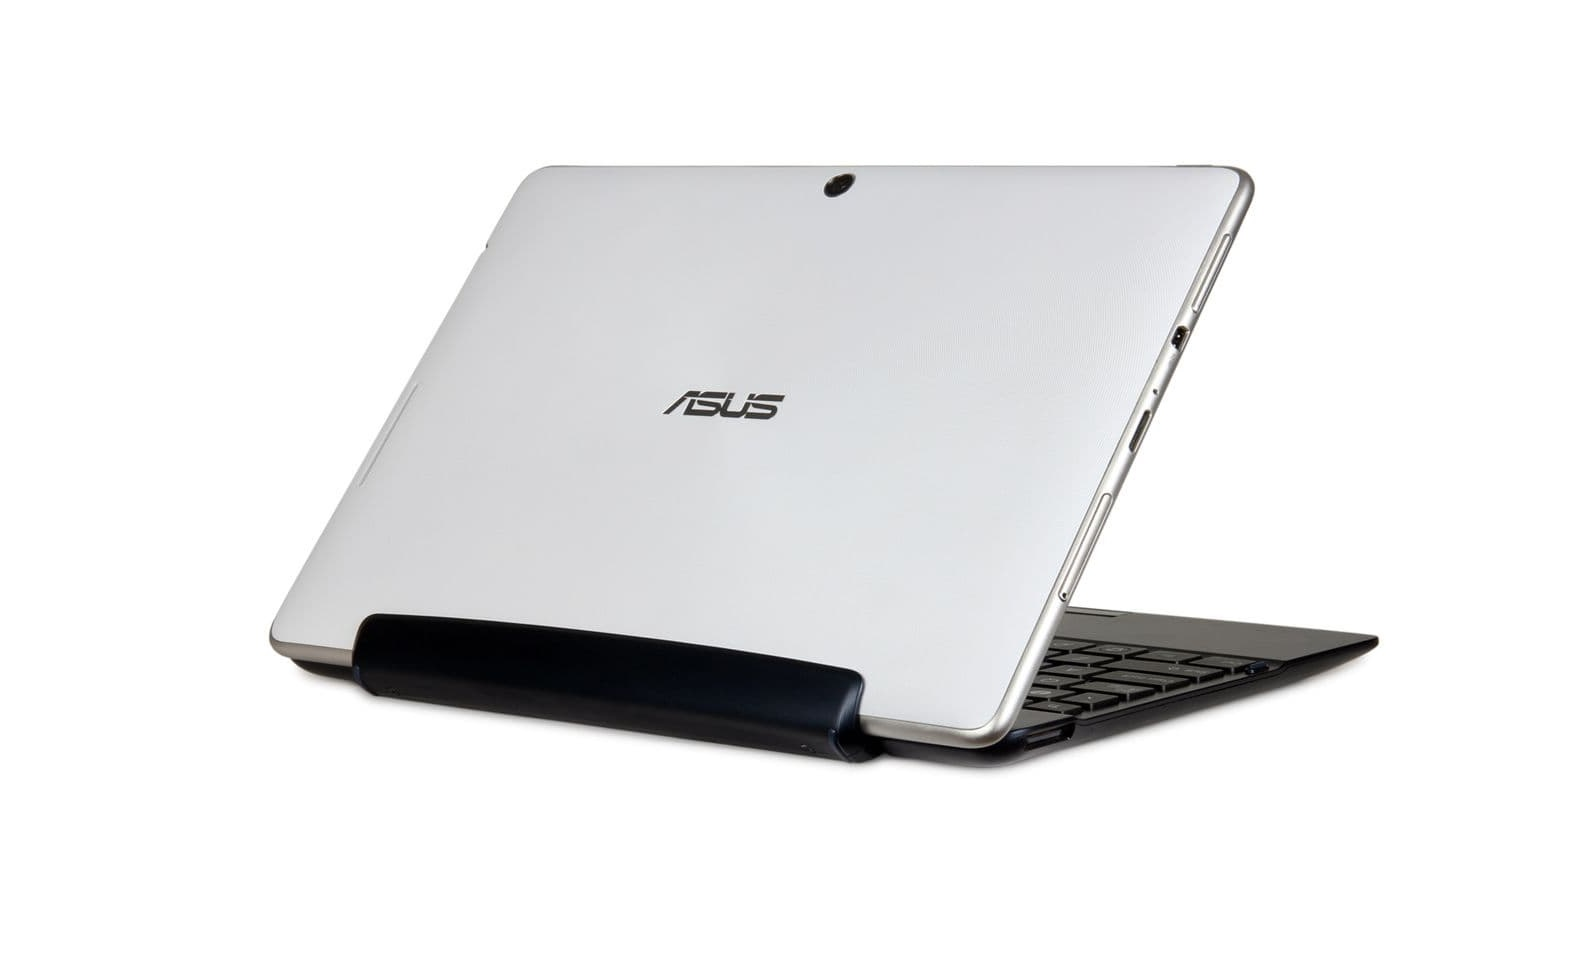 How to Flash Asus Transformer Pad TF300TG Stock Firmware